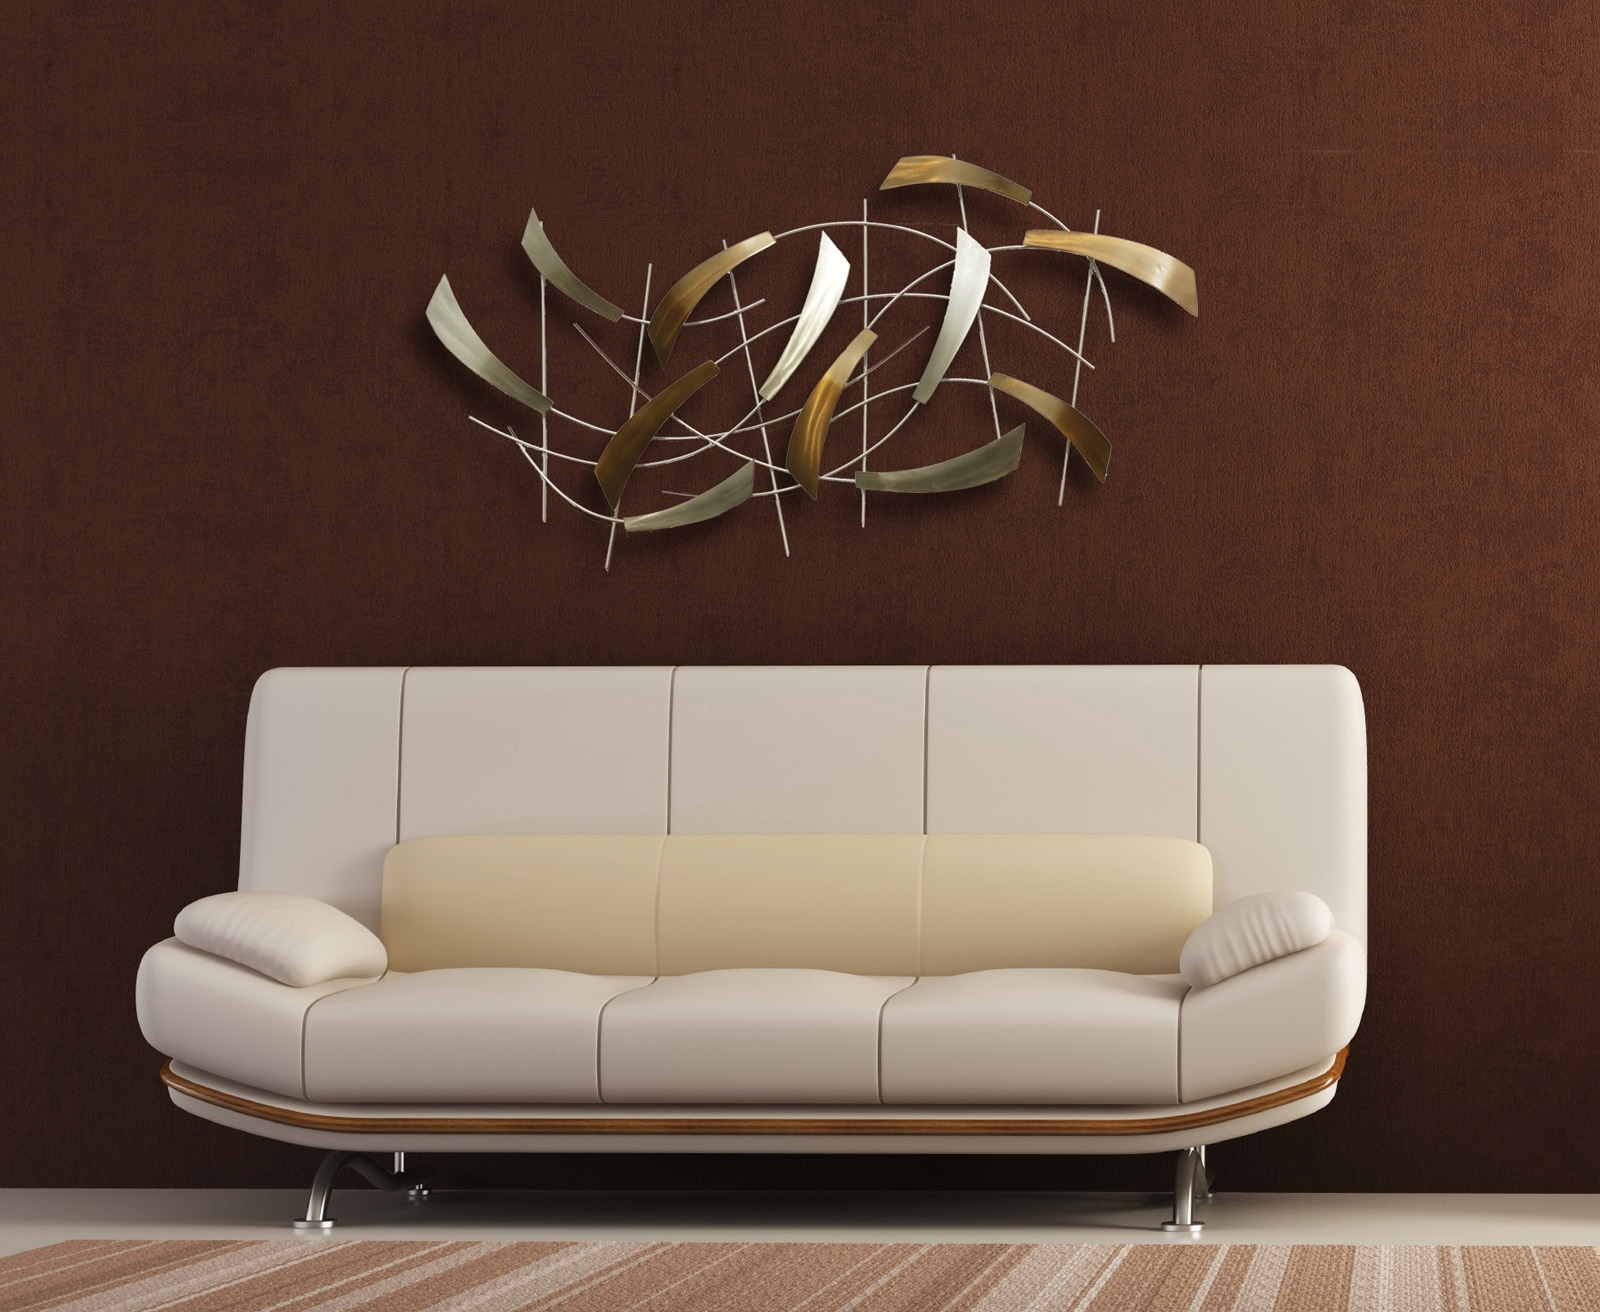 Fashionable Mirrors Modern Wall Art With Regard To Modern Wall Art And Mirrors (View 5 of 15)